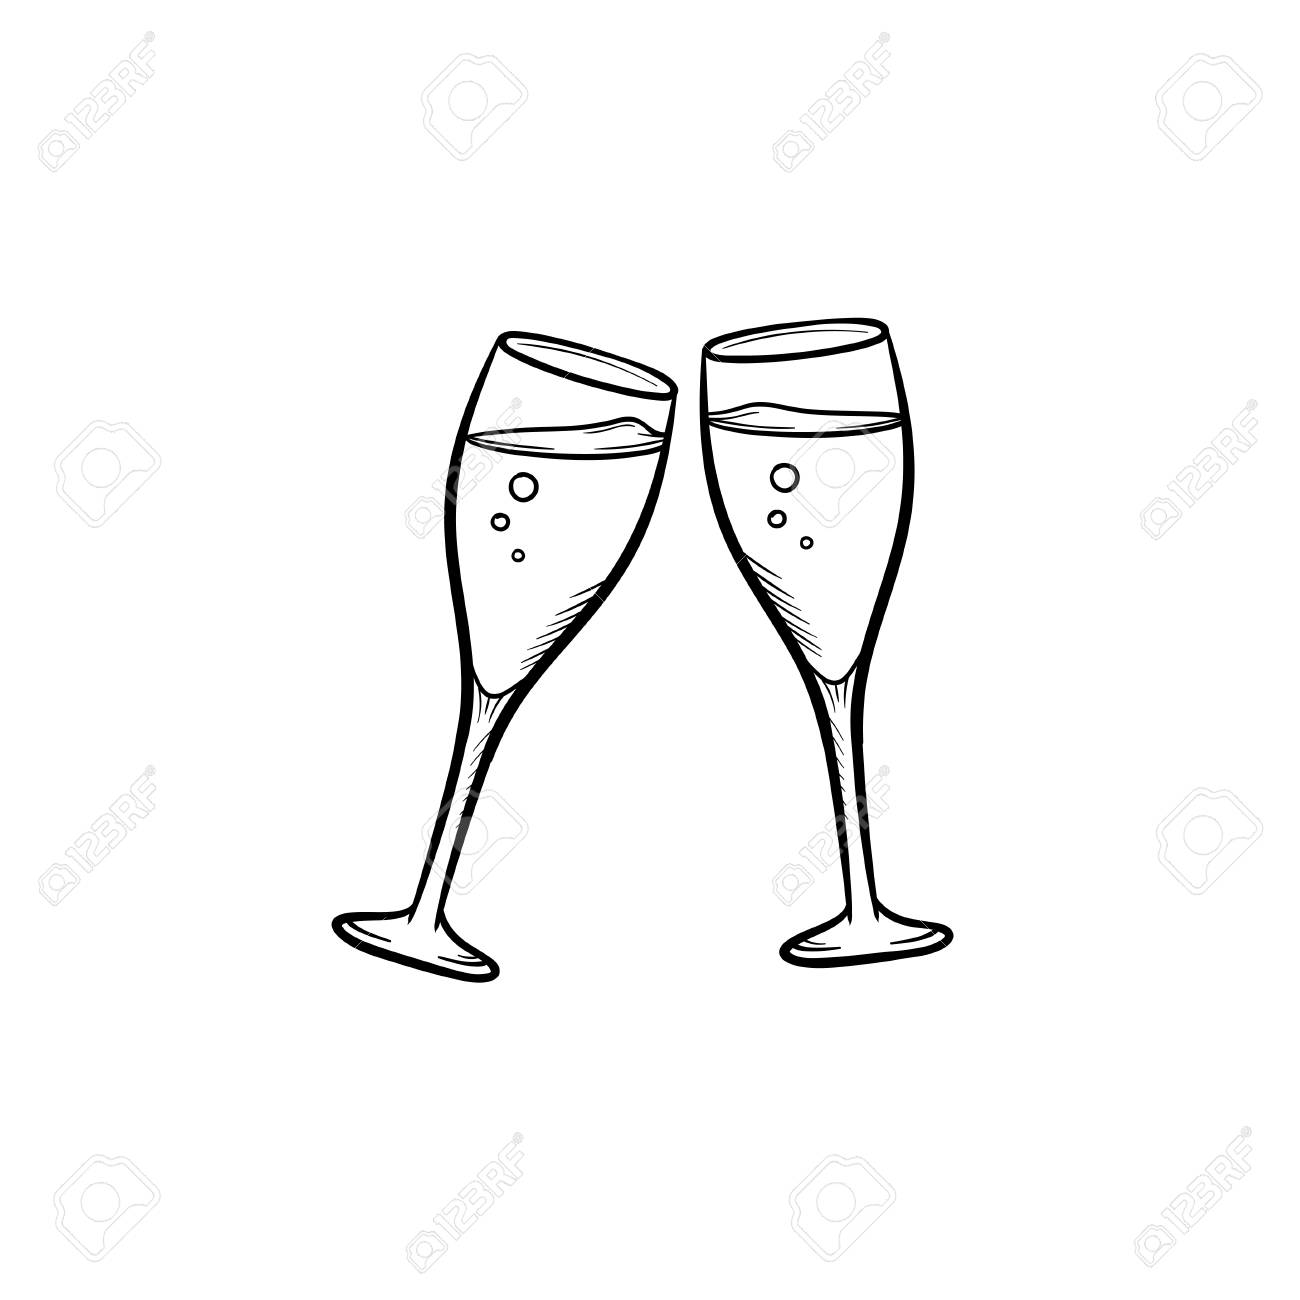 Champagne glasses hand drawn outline doodle icon. Two clinking wineglasses vector sketch illustration for print, web, mobile and infographics isolated on white background.